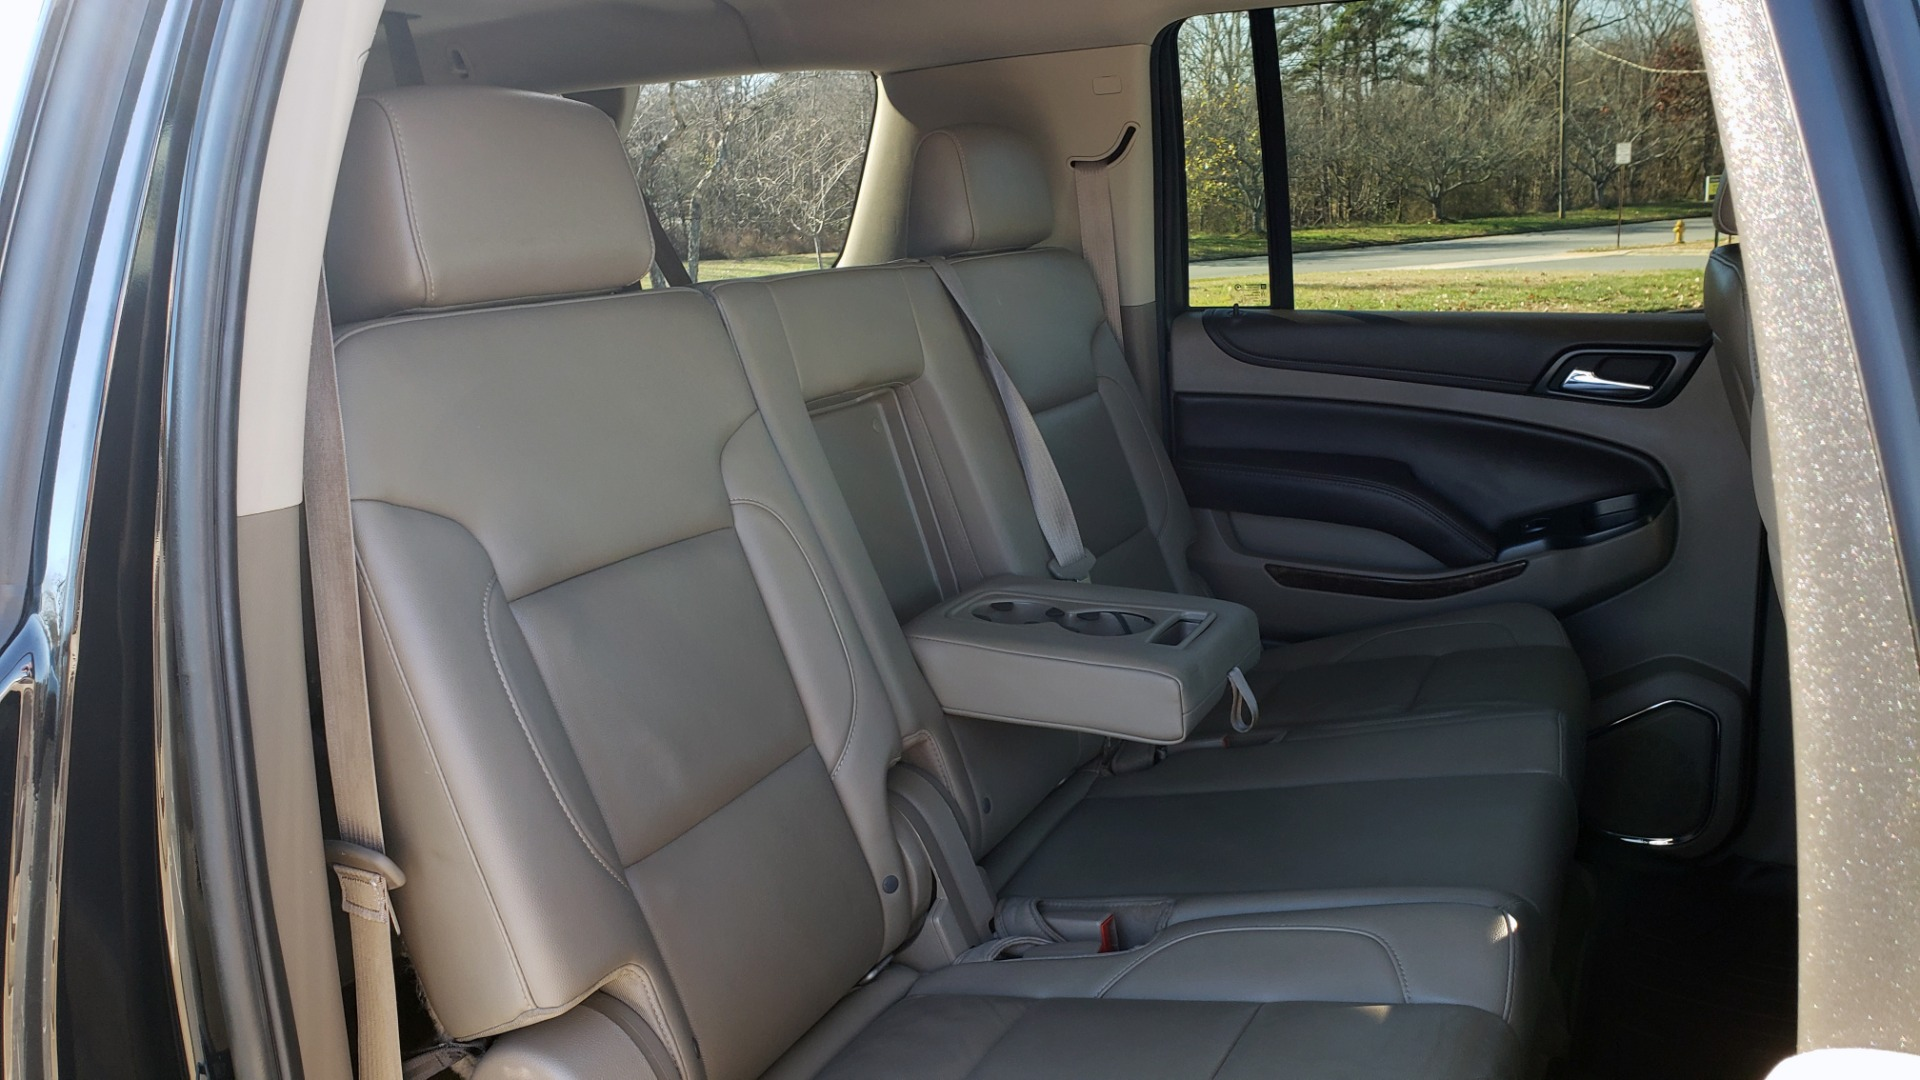 Used 2015 Chevrolet SUBURBAN LT 2WD / NAV / LEATHER / BOSE / 3-ROW / REARVIEW for sale Sold at Formula Imports in Charlotte NC 28227 77